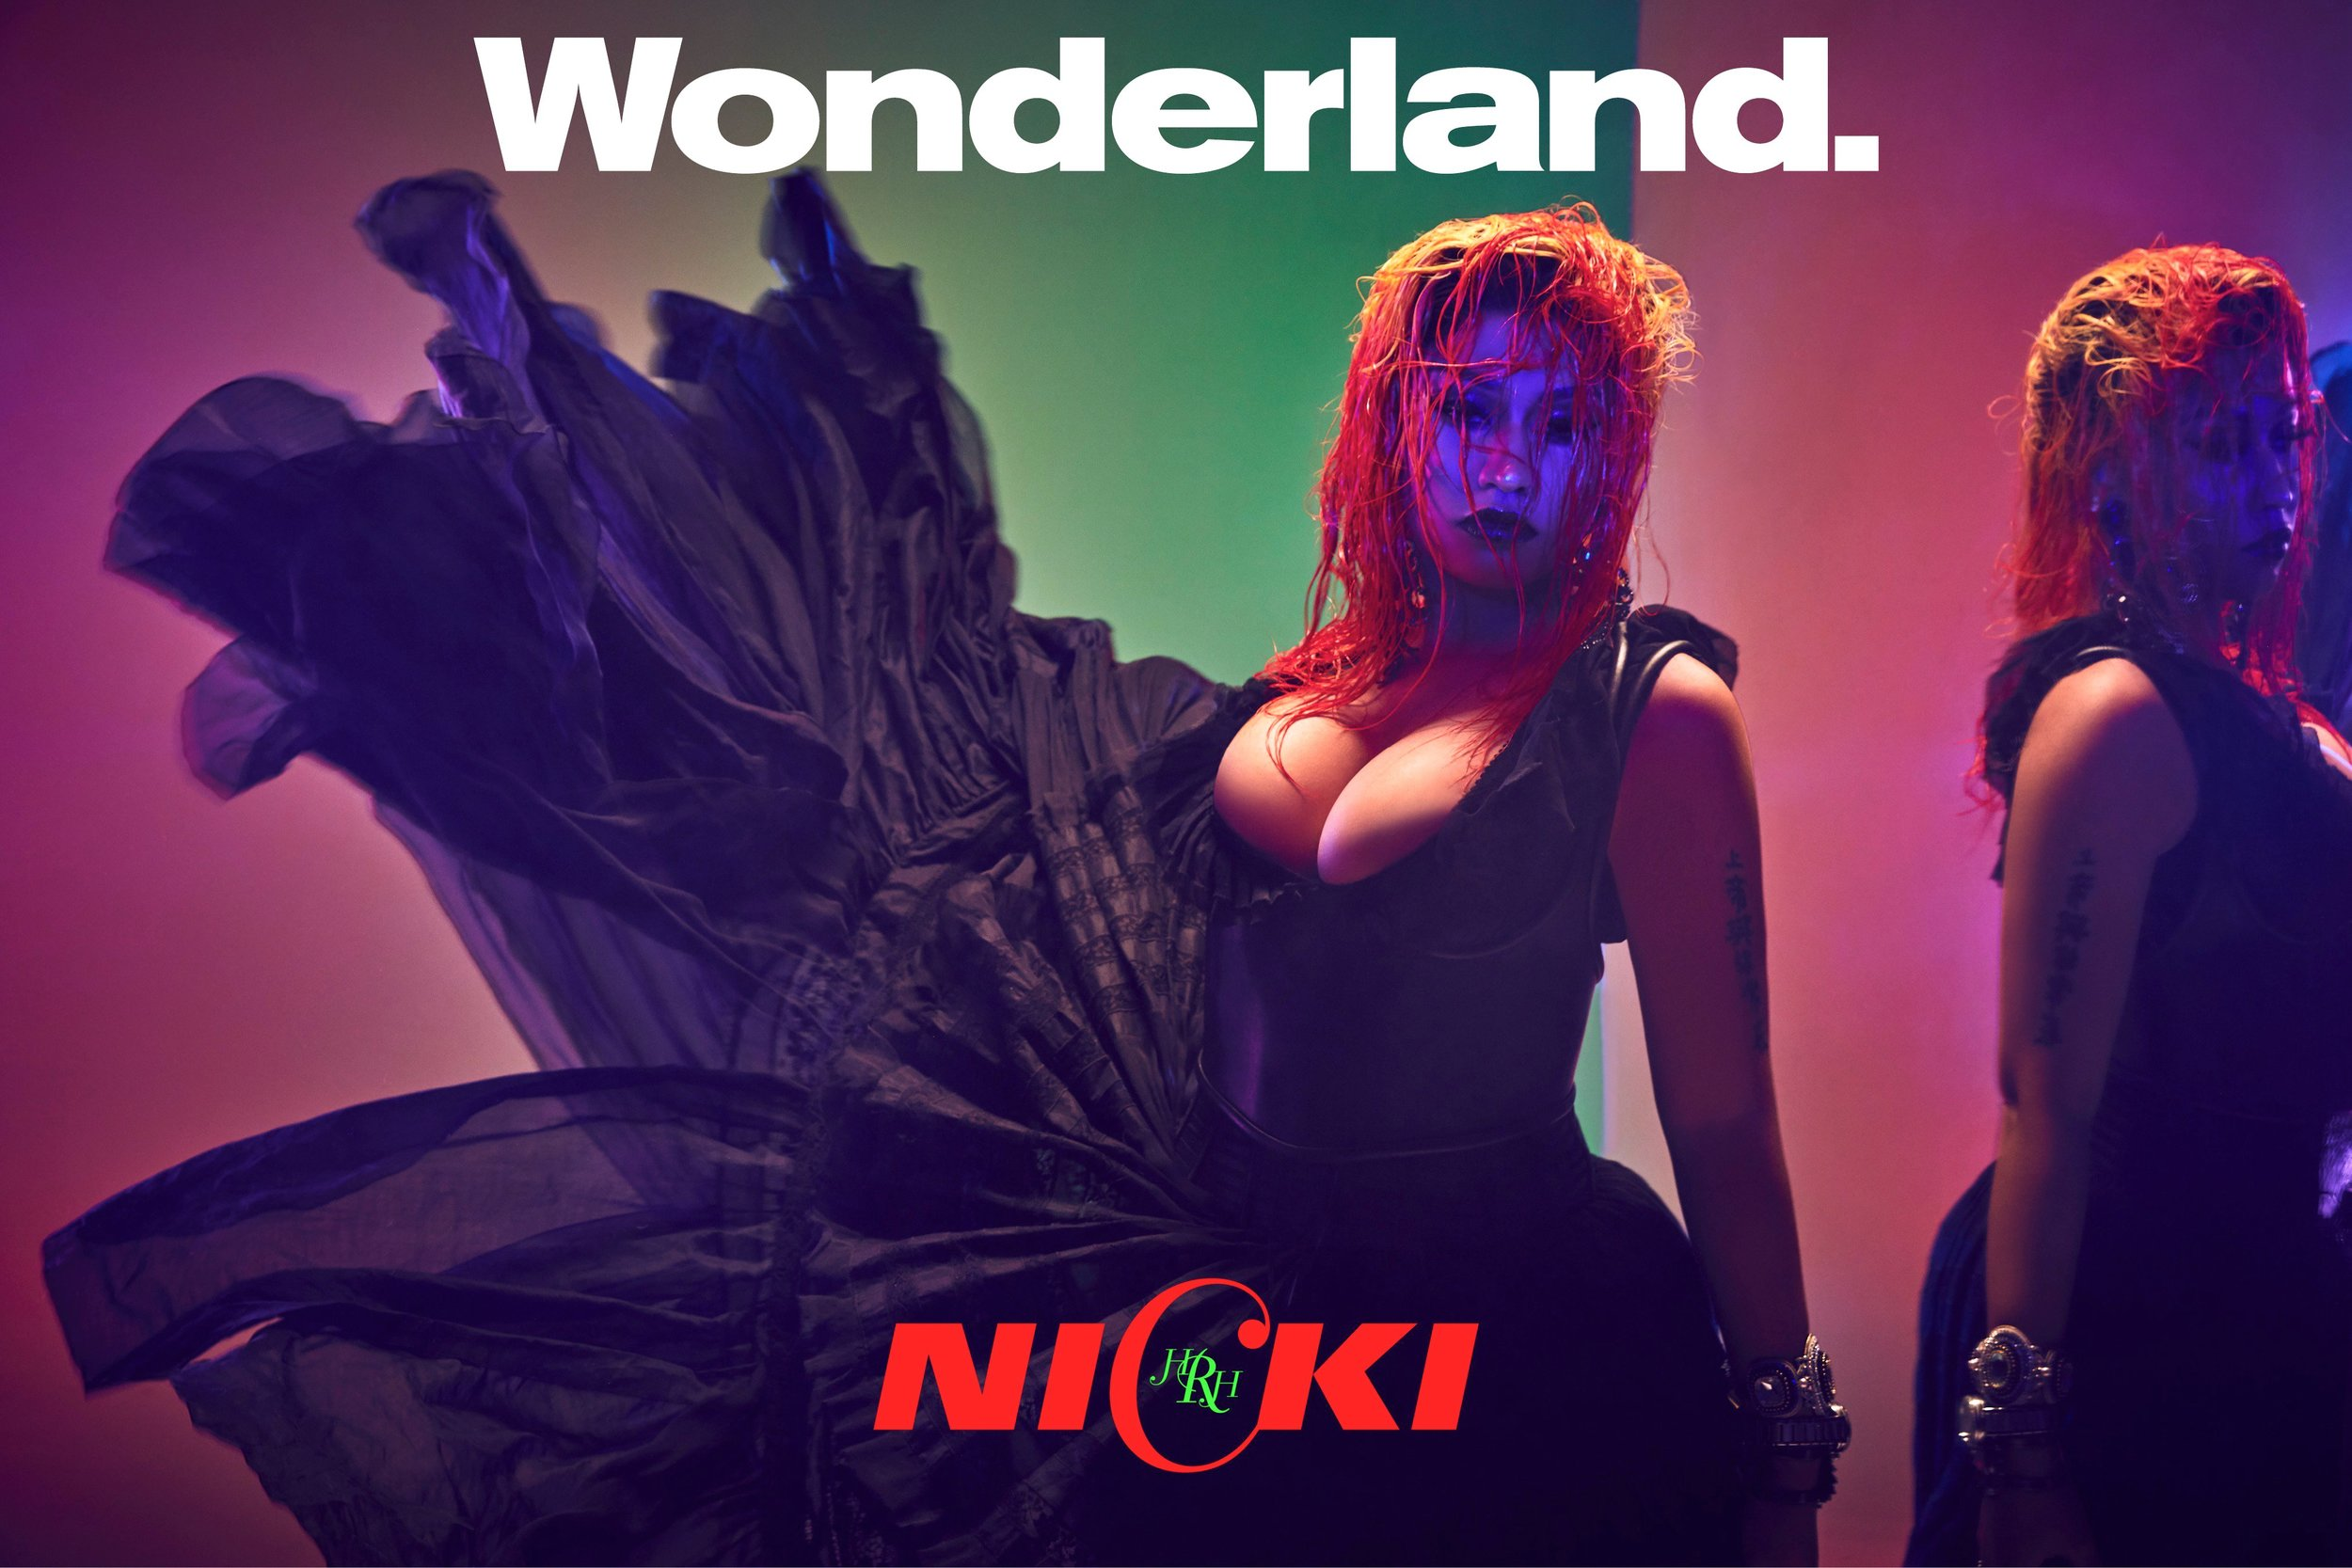 NICKI MINAJ – WONDERLAND